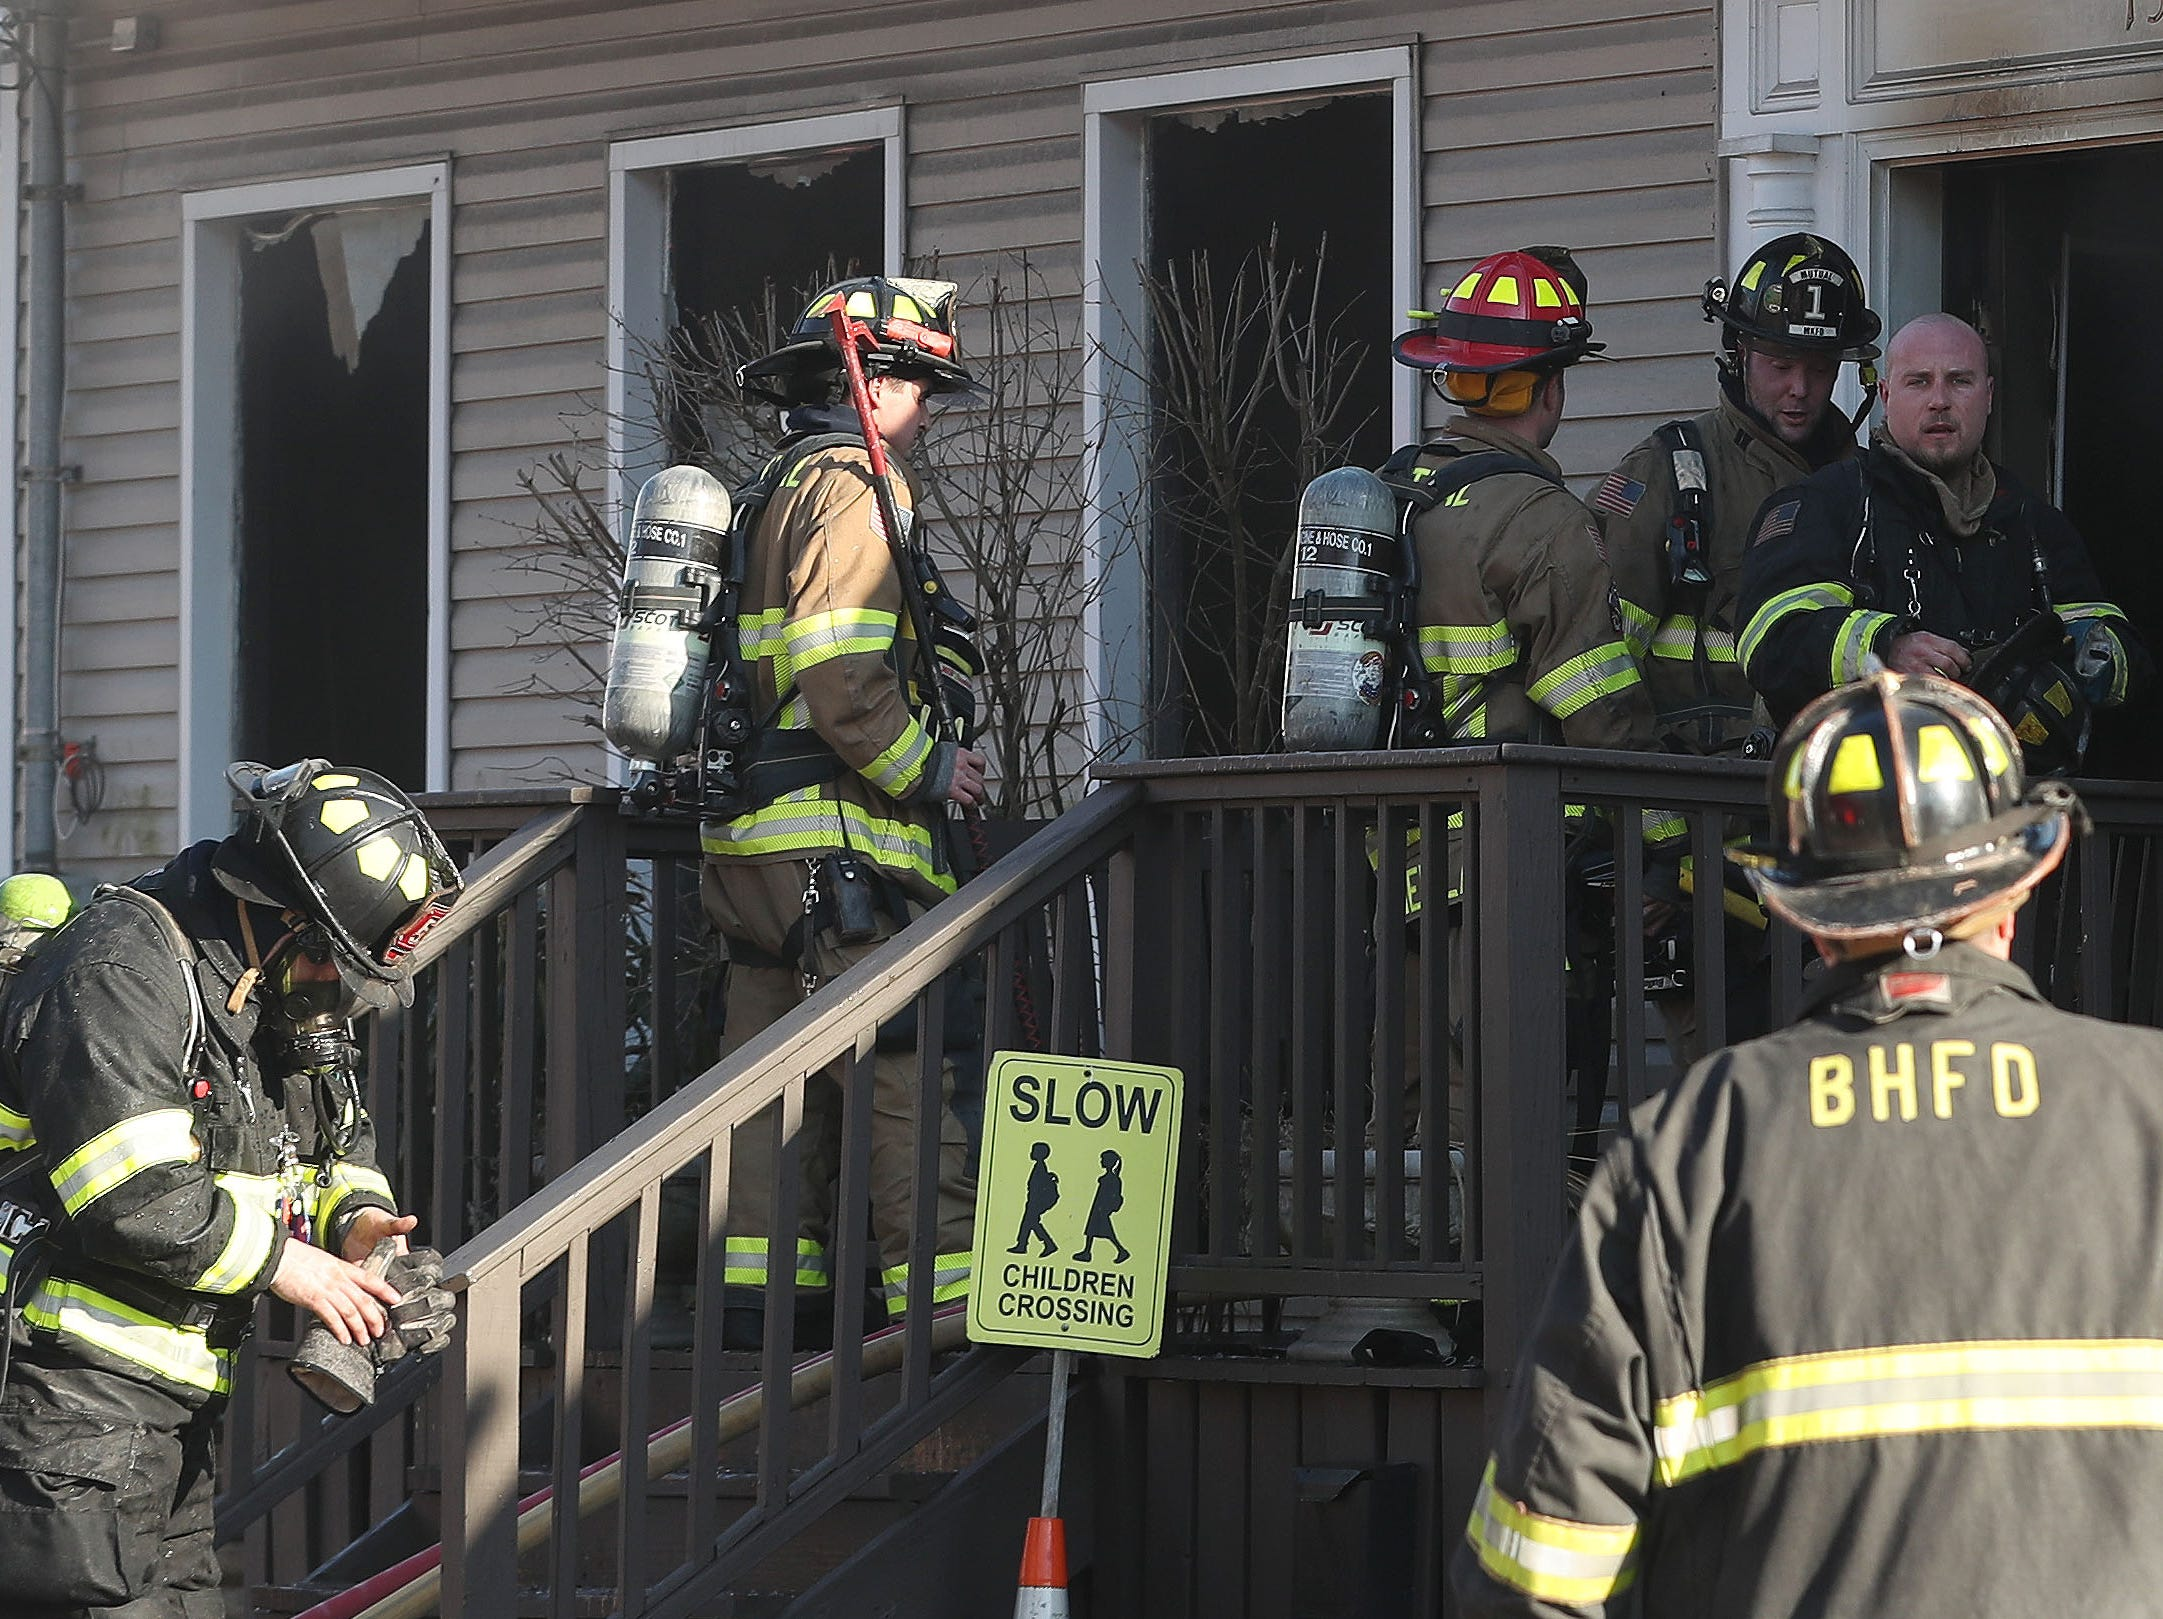 Bedfords Hills firefighters with mutual aid from neighboring departments, work at the scene of a fire at the Chabad Jewish Center on Railroad Avenue in Bedford Hills  Feb. 5,  2019.